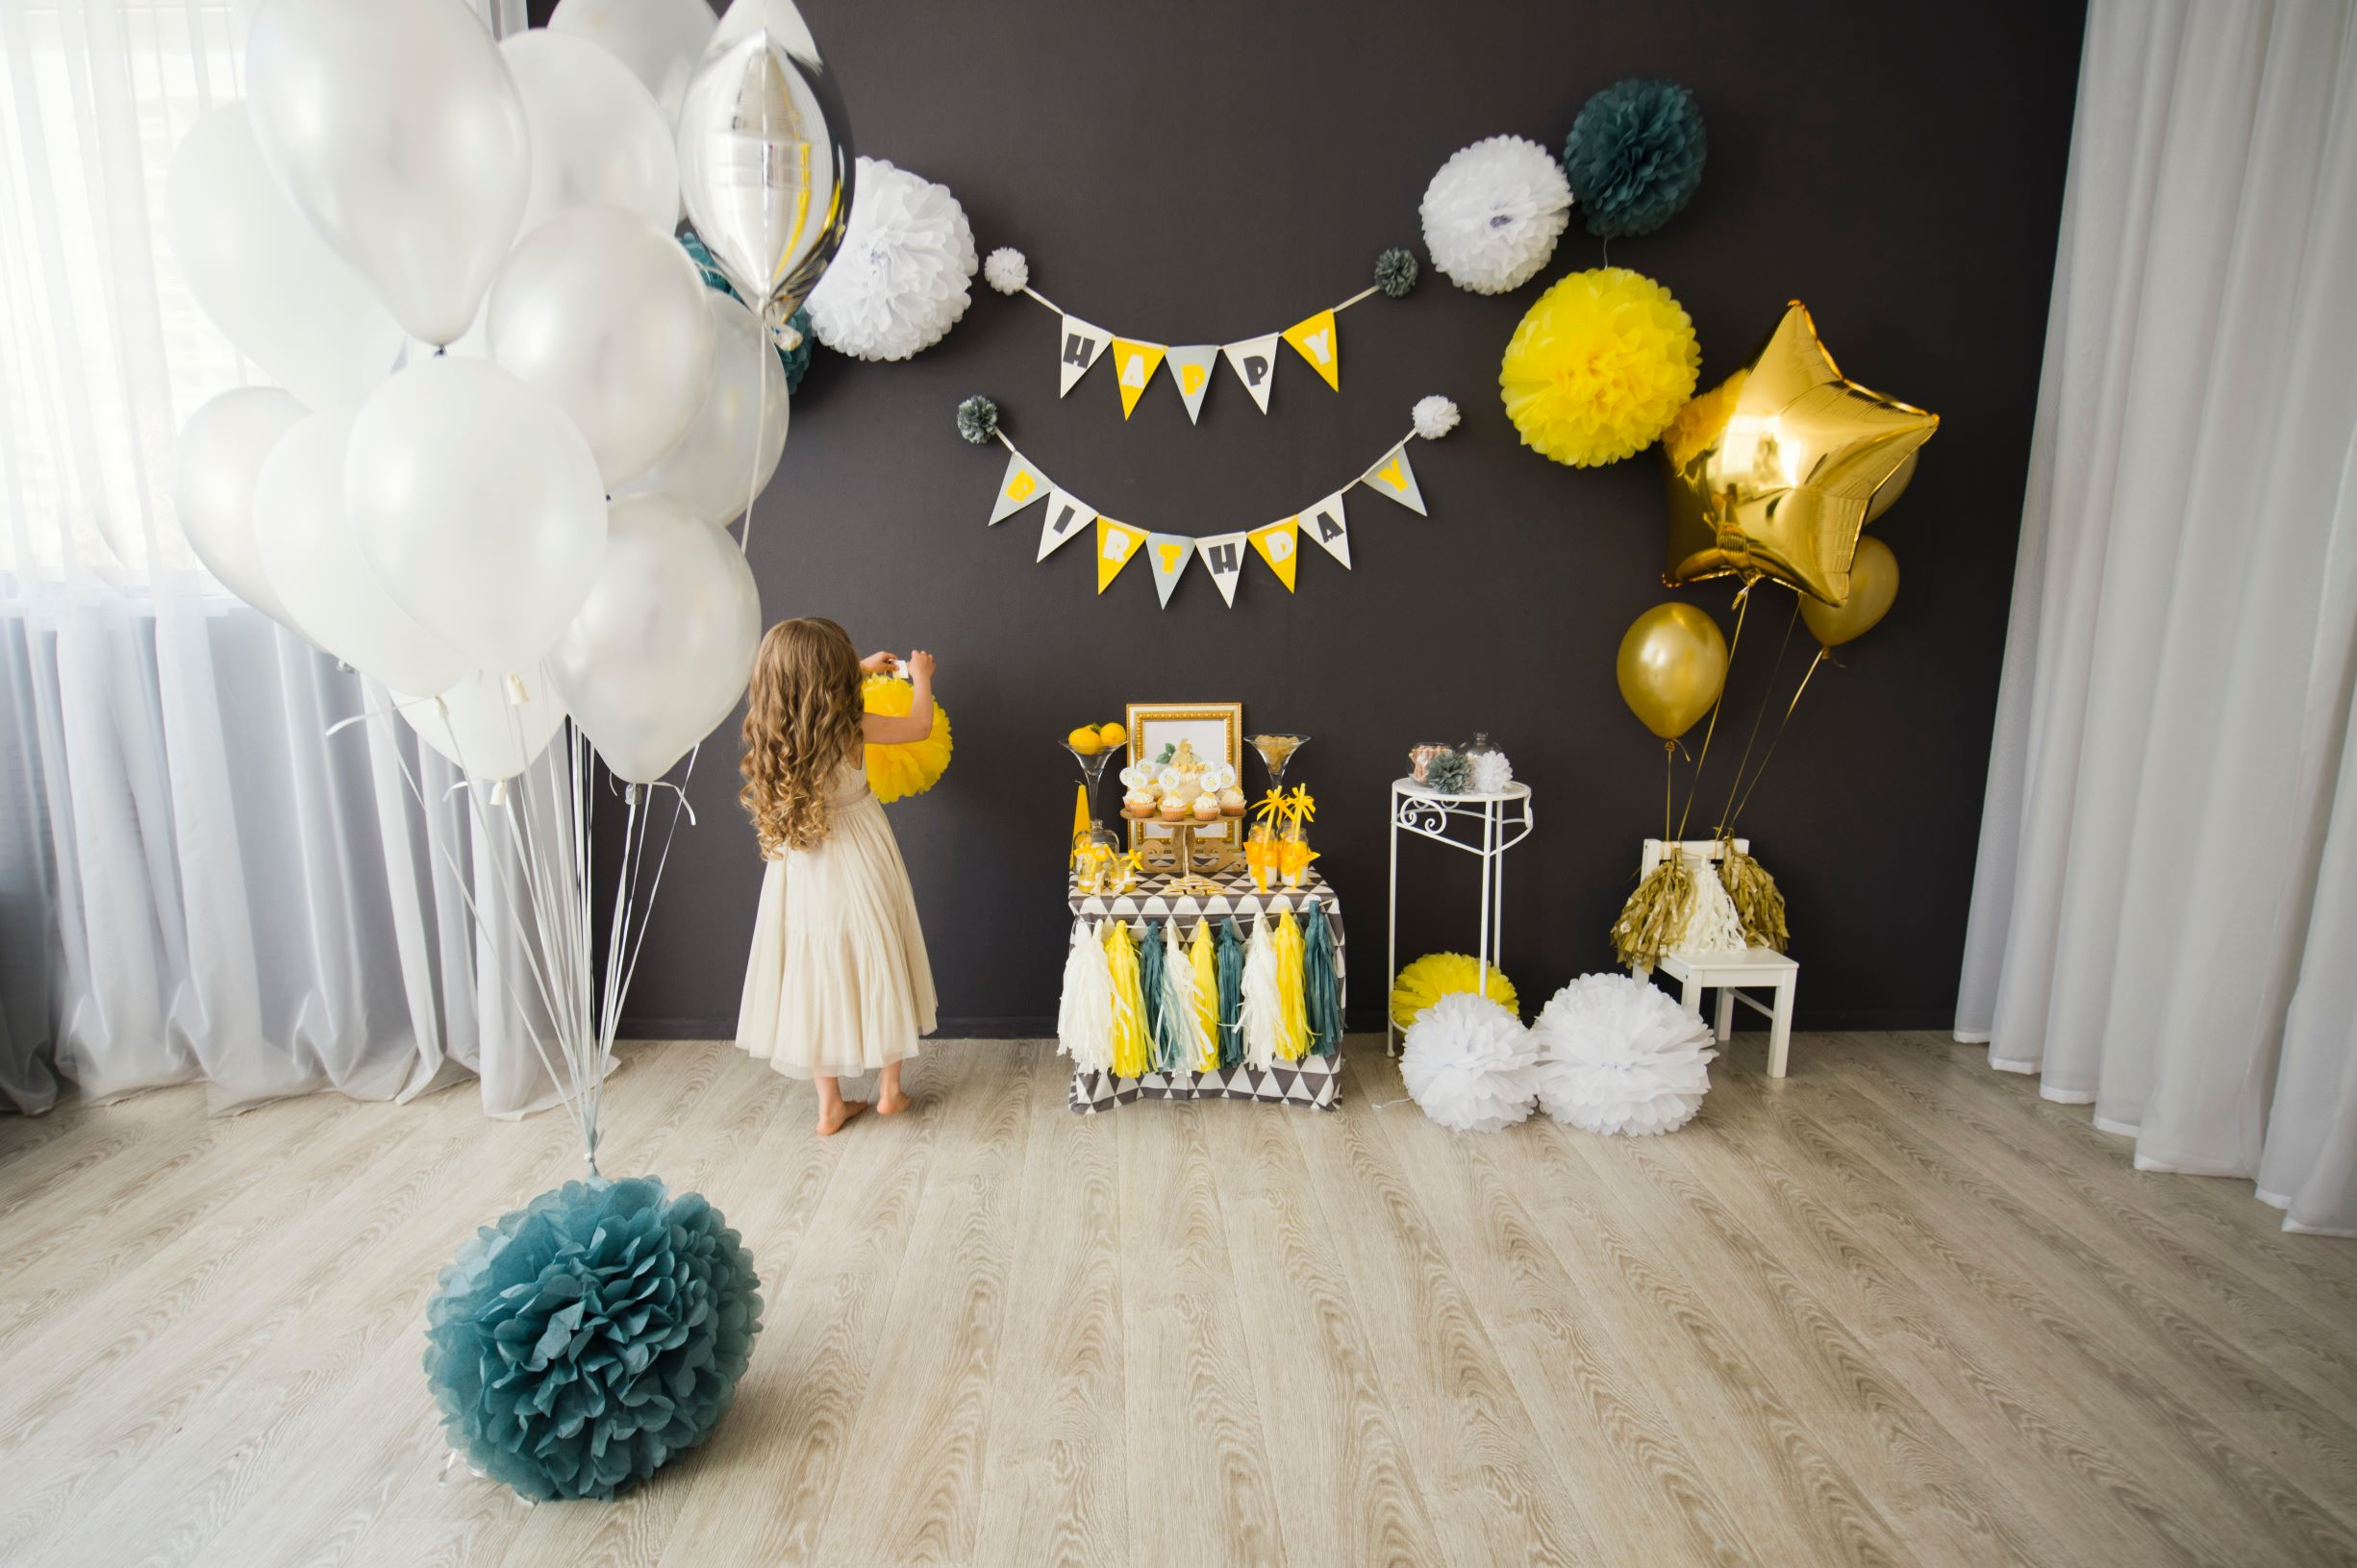 Birthday Decorations in Ultimate Gray and Yellow